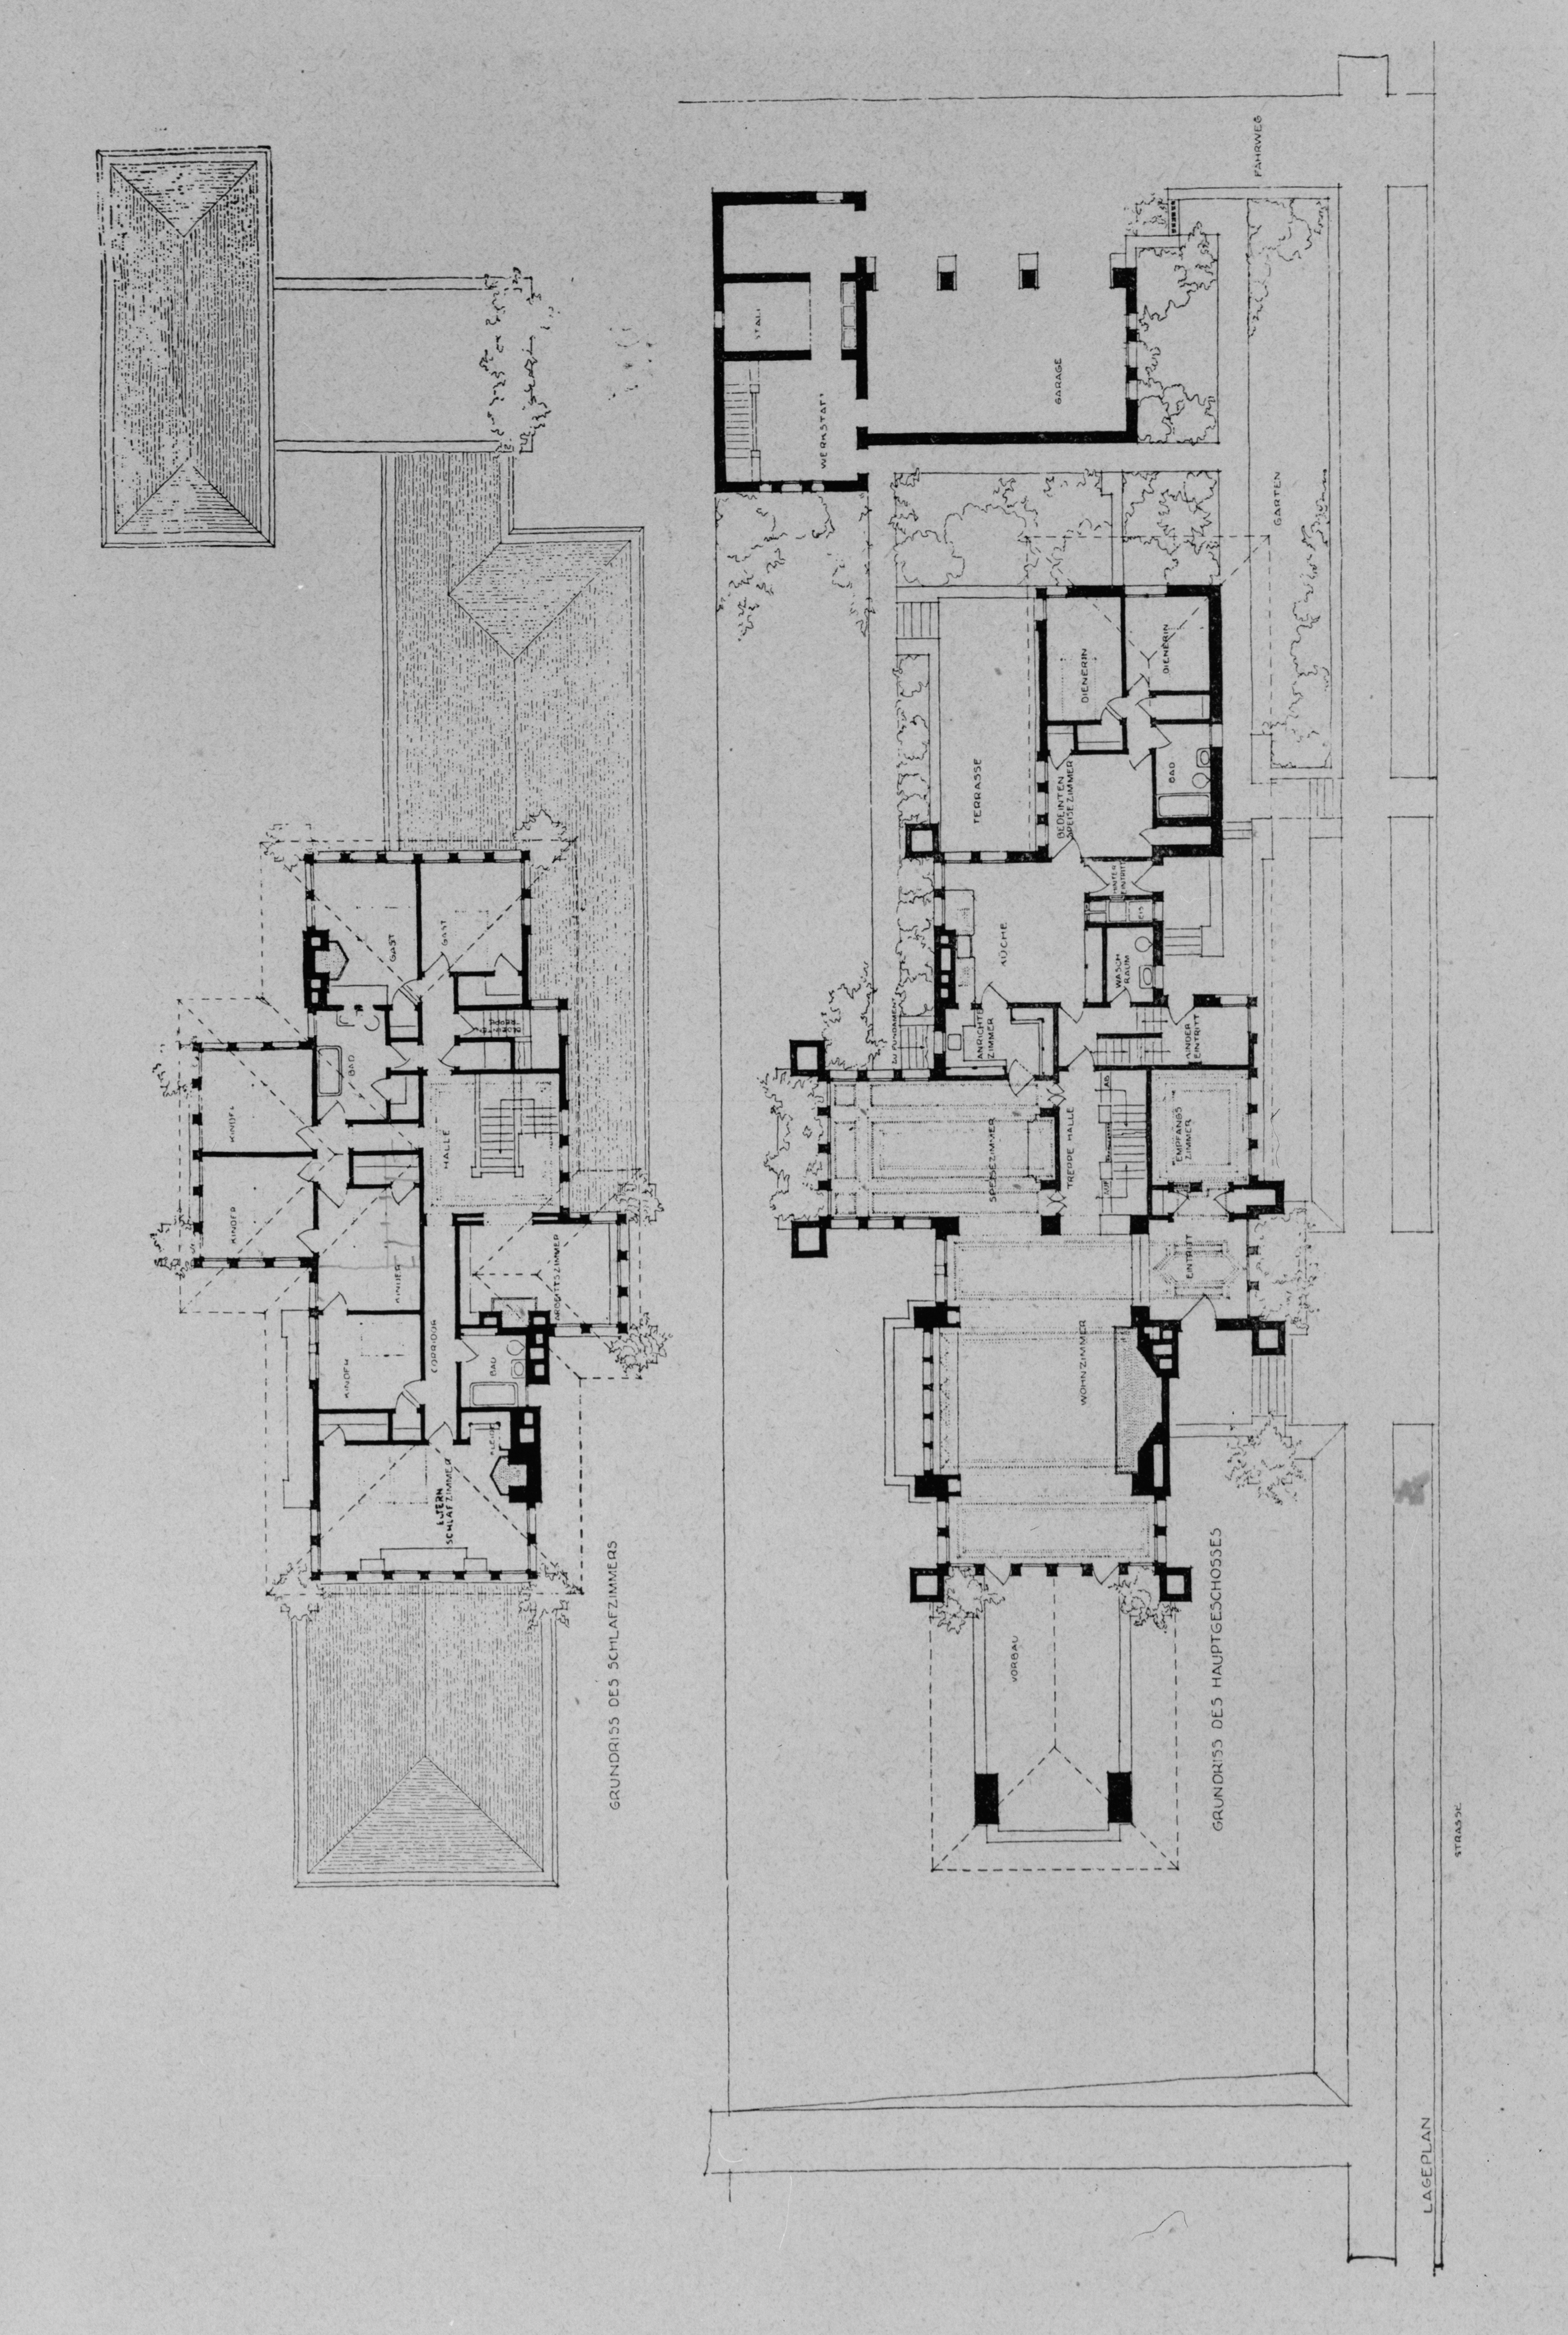 File:1. PLATE ^79, 'GRUNDRISS DES HAUPT UND OBERGESCHOSSES ... on house clip art, house foundation, house structure, house design, house construction, house plants, house models, house layout, house blueprints, house exterior, house rendering, house maps, house painting, house framing, house building, house styles, house types, house elevations, house drawings, house roof,